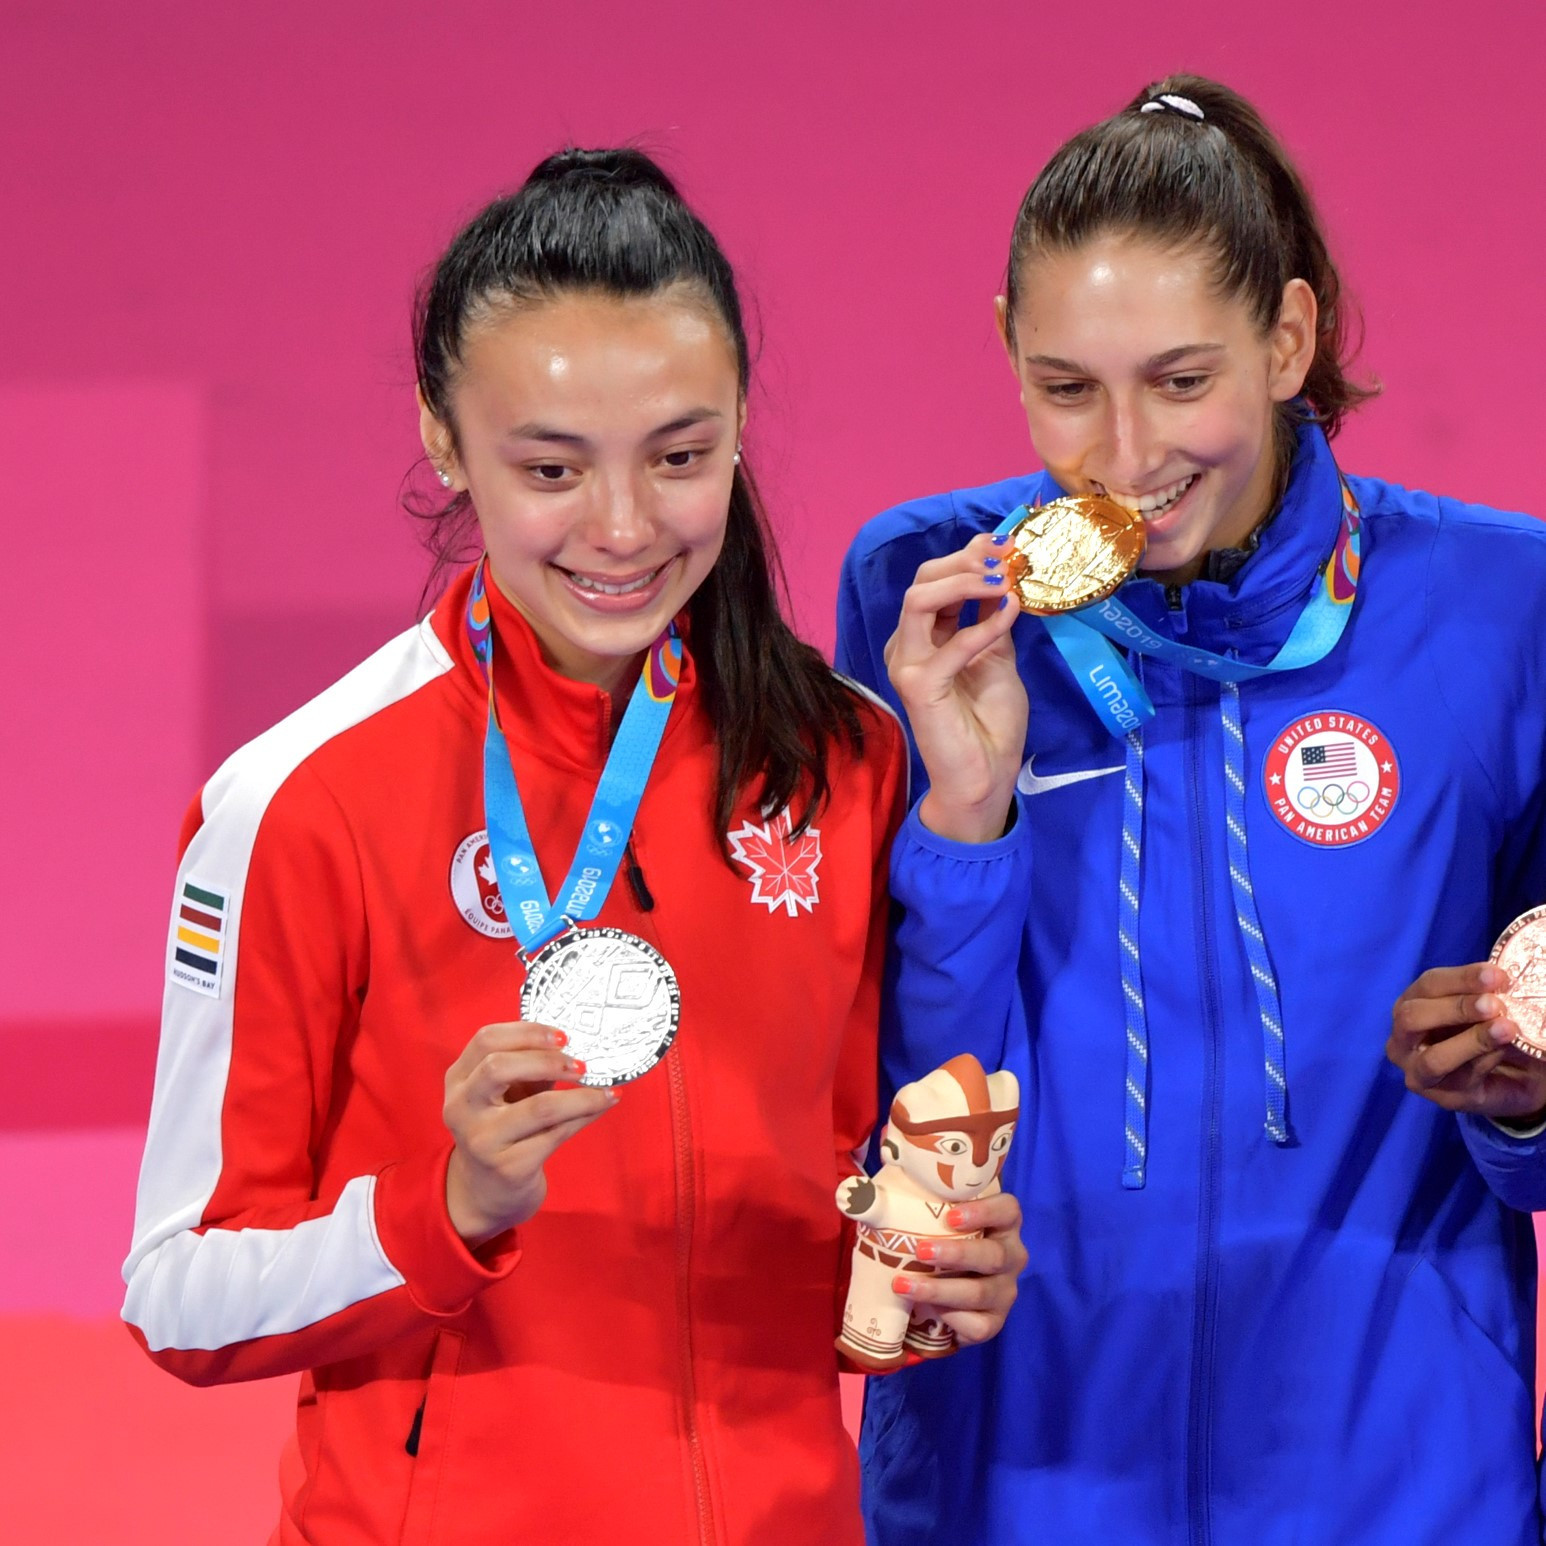 Skylar Park, left, was runner-up at the Lima 2019 Pan American Games ©Getty Images